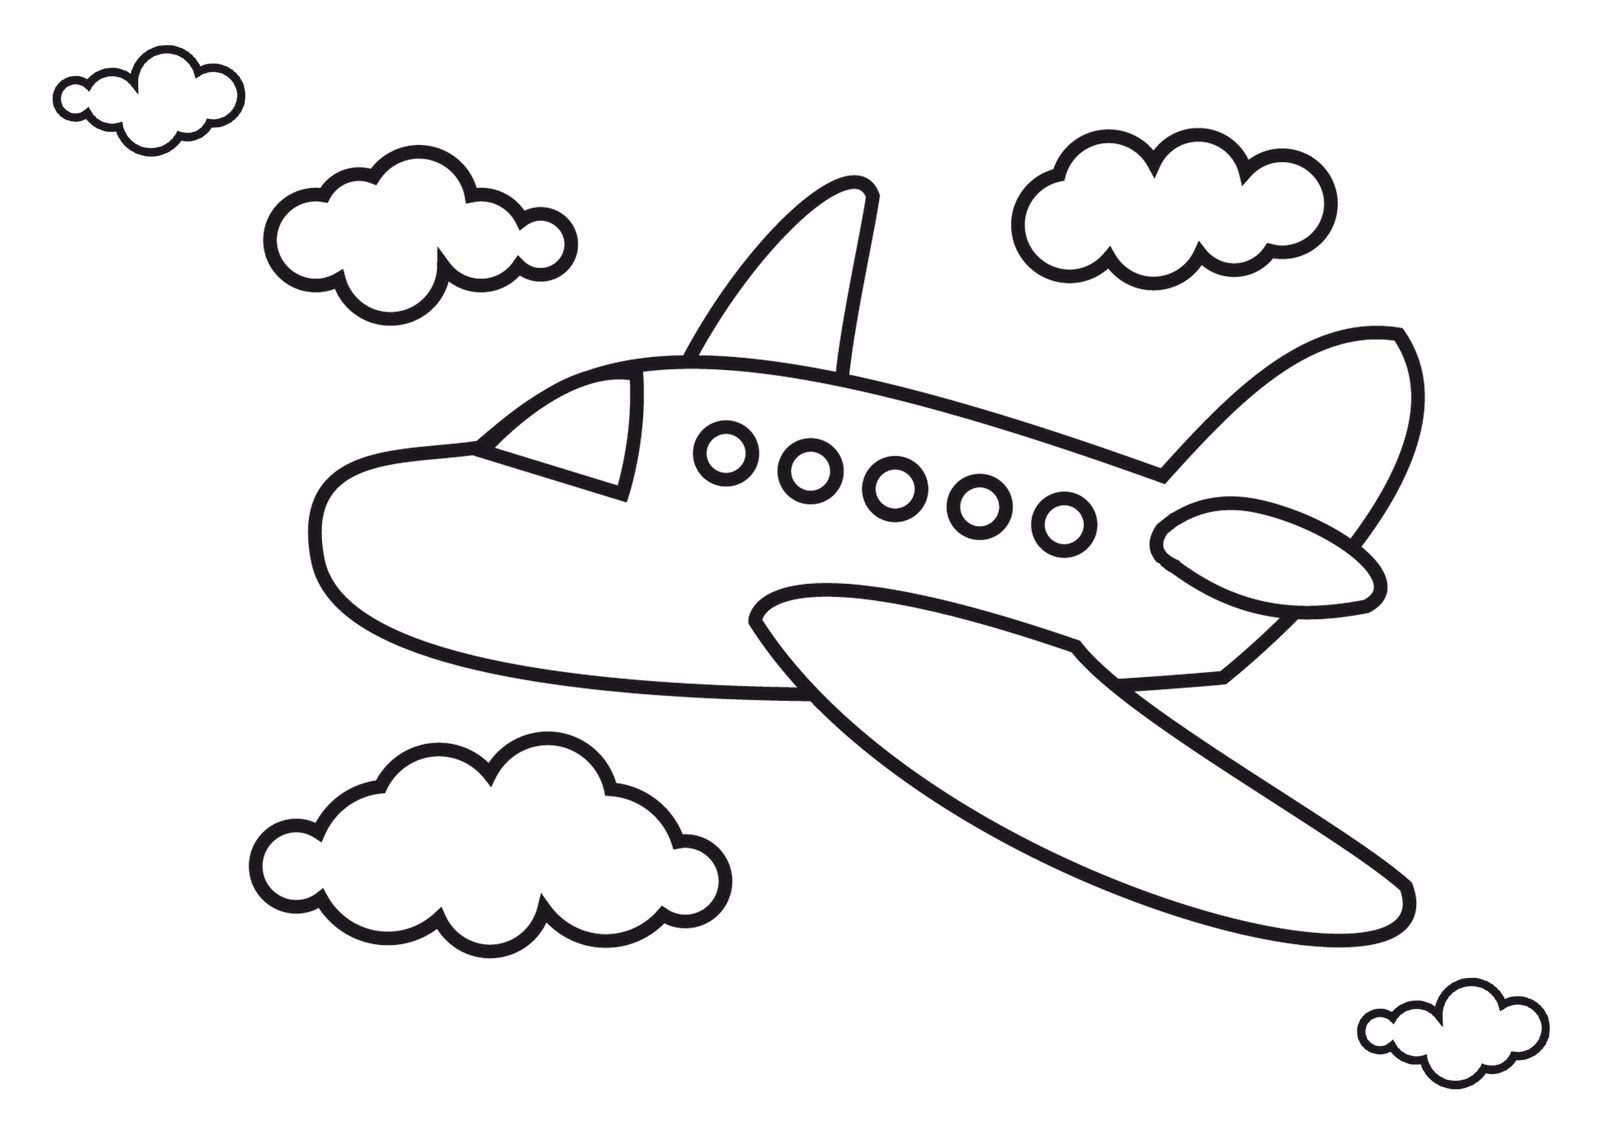 Best ideas about Planes Coloring Pages For Kids . Save or Pin Airplane Coloring Pages Airplanes For Kids Now.